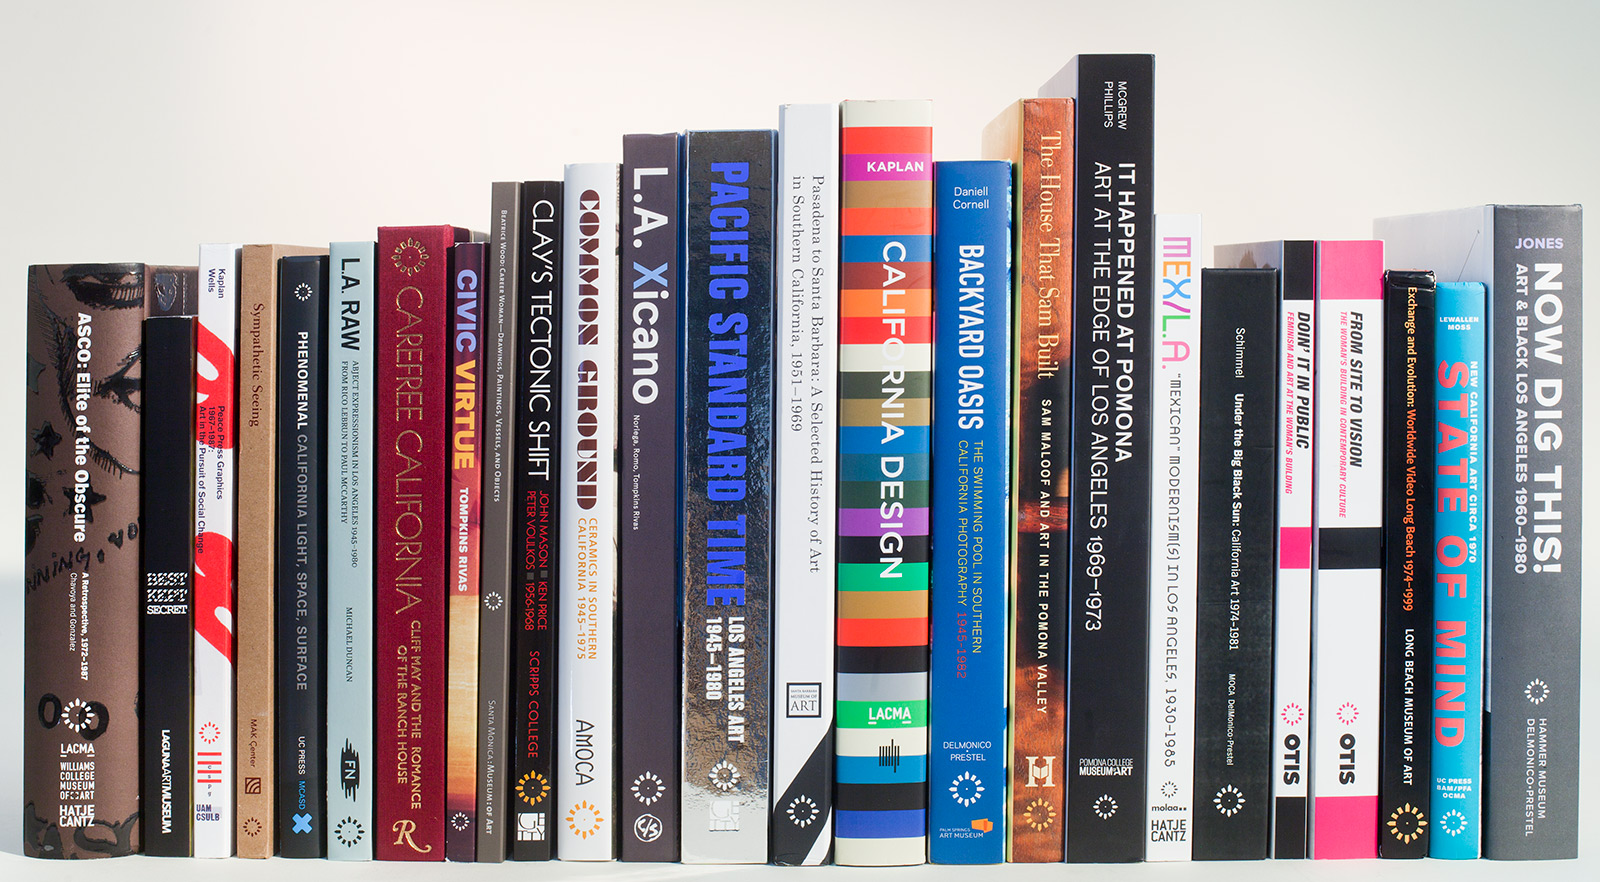 Spines of multiple hardback books about Latin American and Latino art standing side by side on a shelf